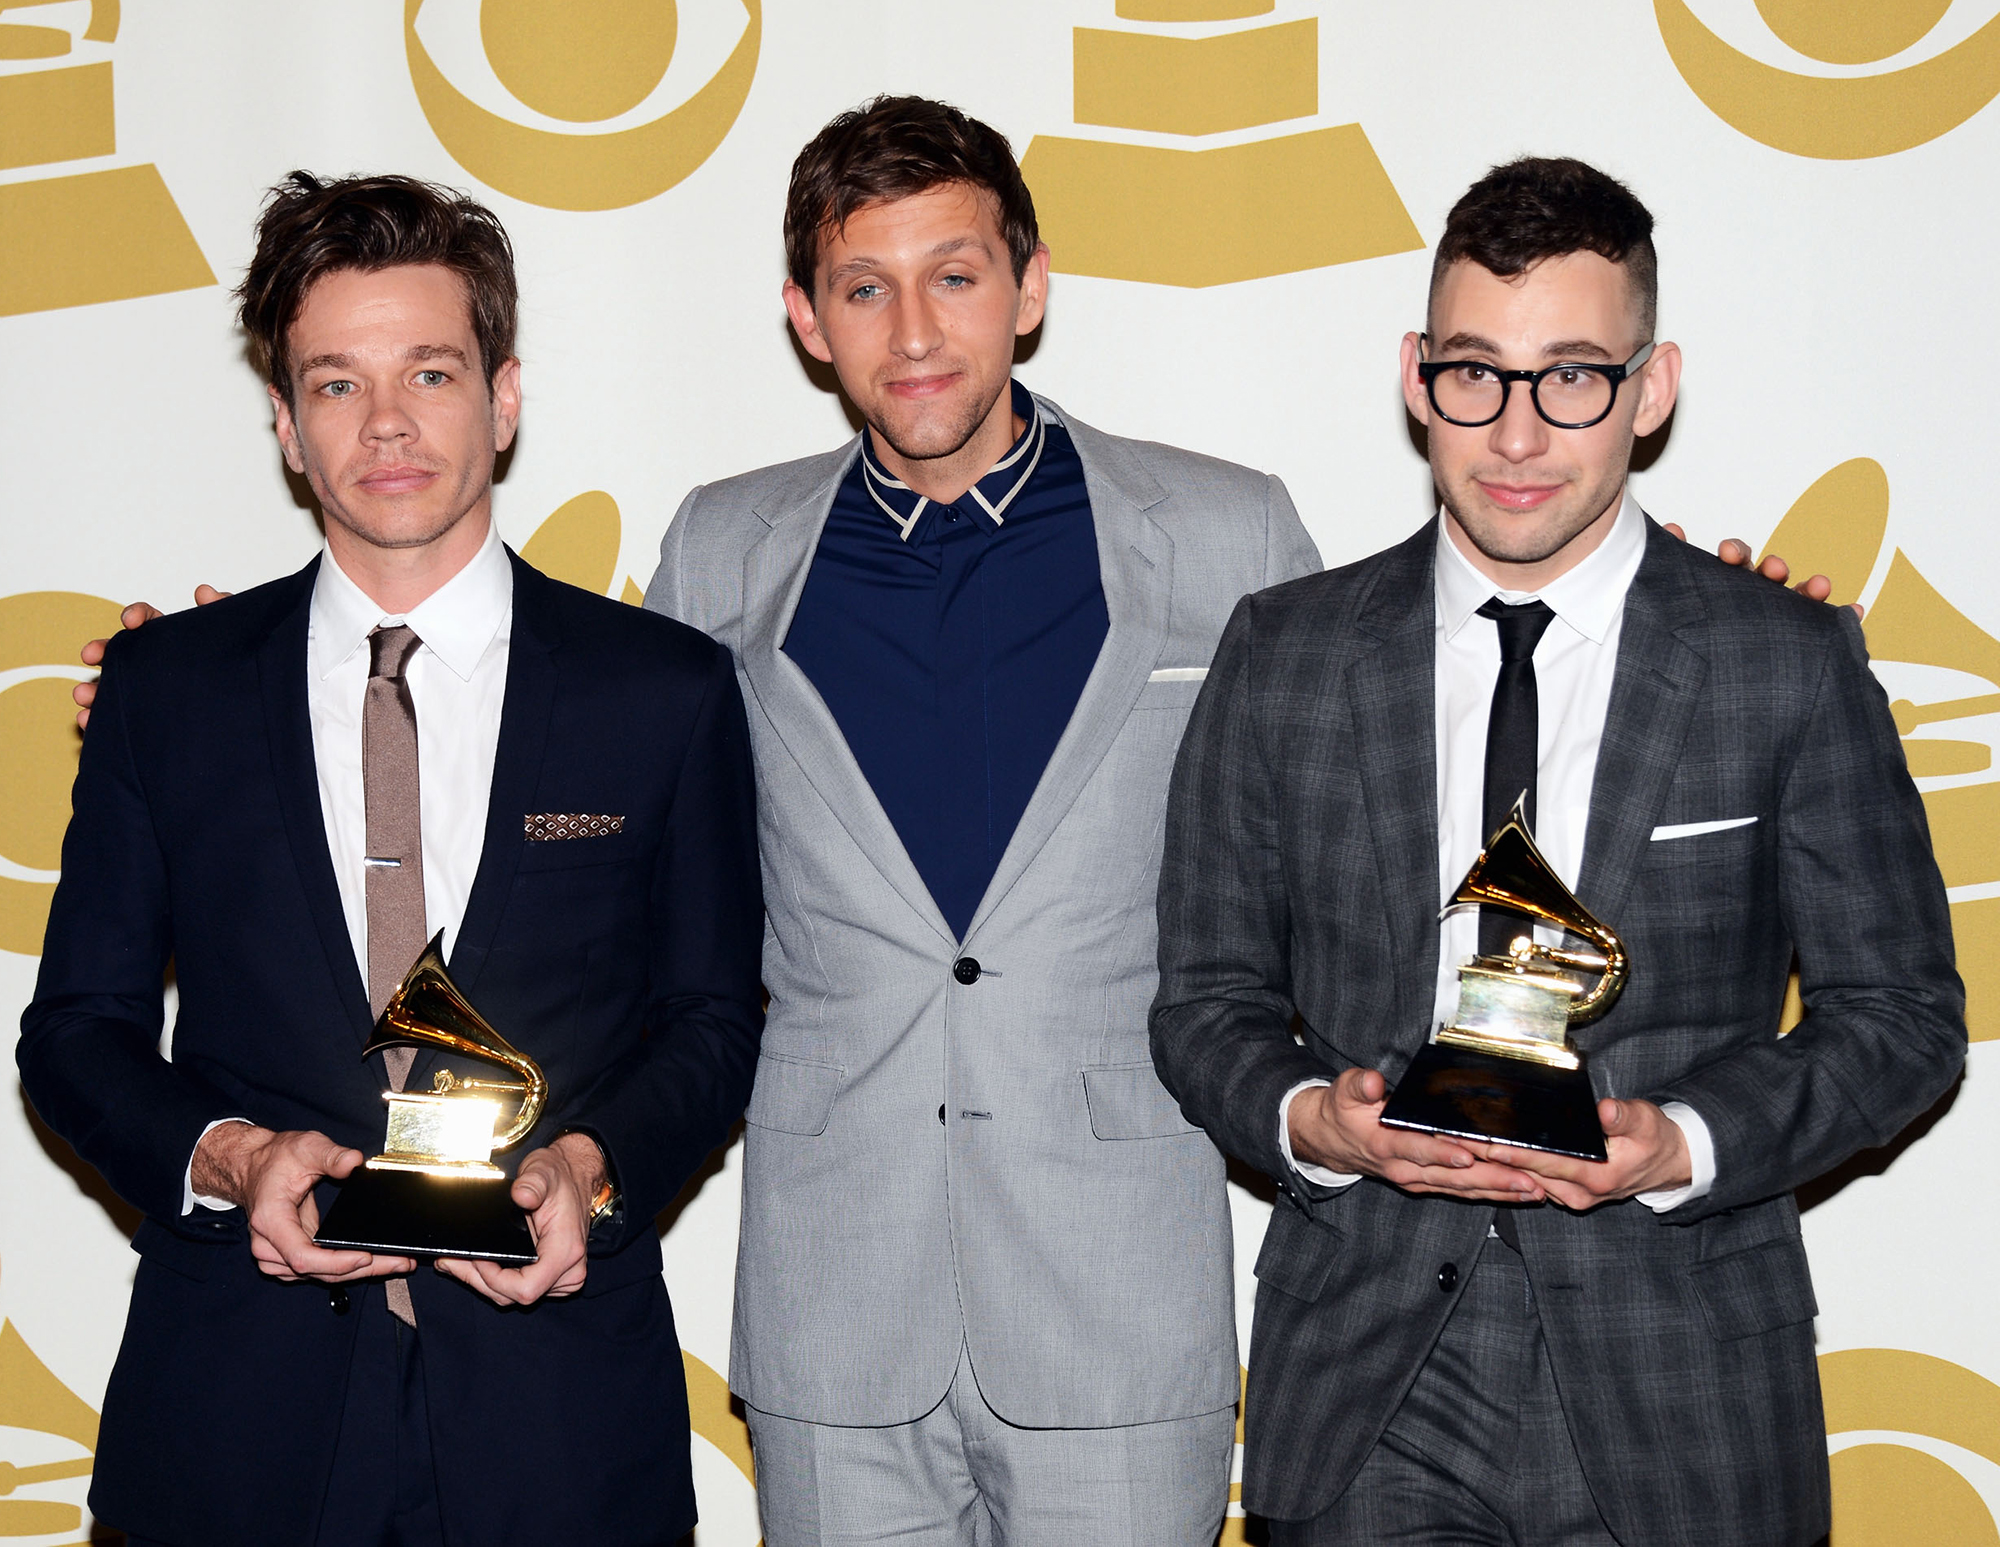 """Best New Artist Grammy Winners Where Are They Now - Who They Beat: Alabama Shakes, Hunter Hayes, The Lumineers, Frank Ocean Where Are They Now: The band announced on its Facebook page in February 2015 that its members — Jack Antonoff, Andrew Dost and Nate Ruess — were taking time off to pursue other projects. """"First and foremost, to answer the question that has been raised most often: Fun is not breaking up. Fun was founded by the 3 of us at a time when we were coming out of our own bands. One thing that has always been so special about Fun is that we exist as 3 individuals in music who come together to do something collaborative,"""" the statement read."""